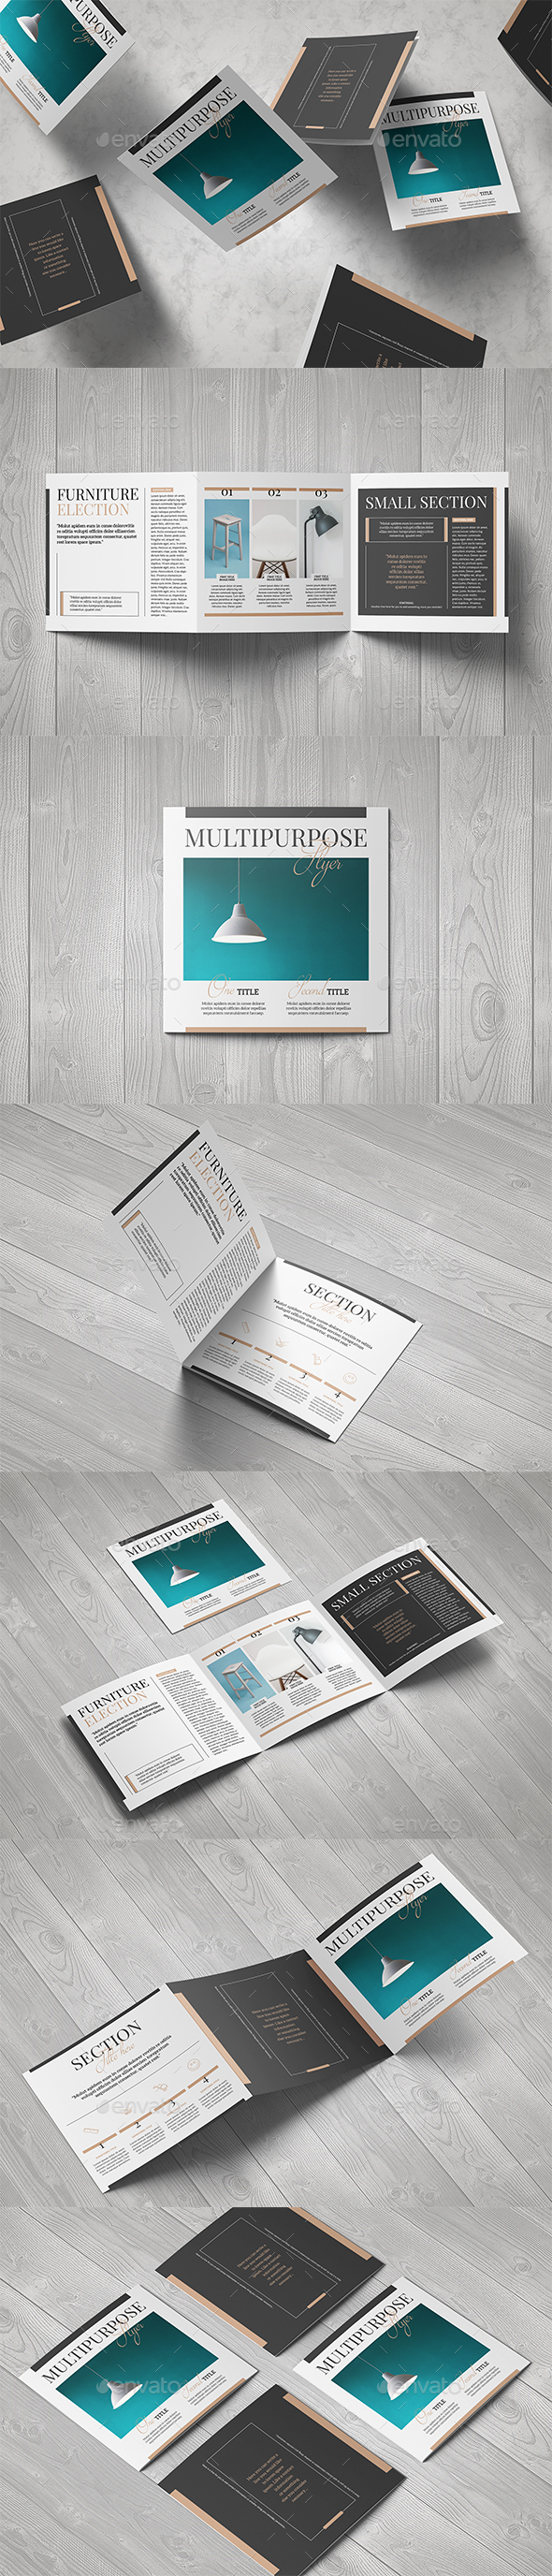 Multipurpose Square Brochure - Brochures Print Templates